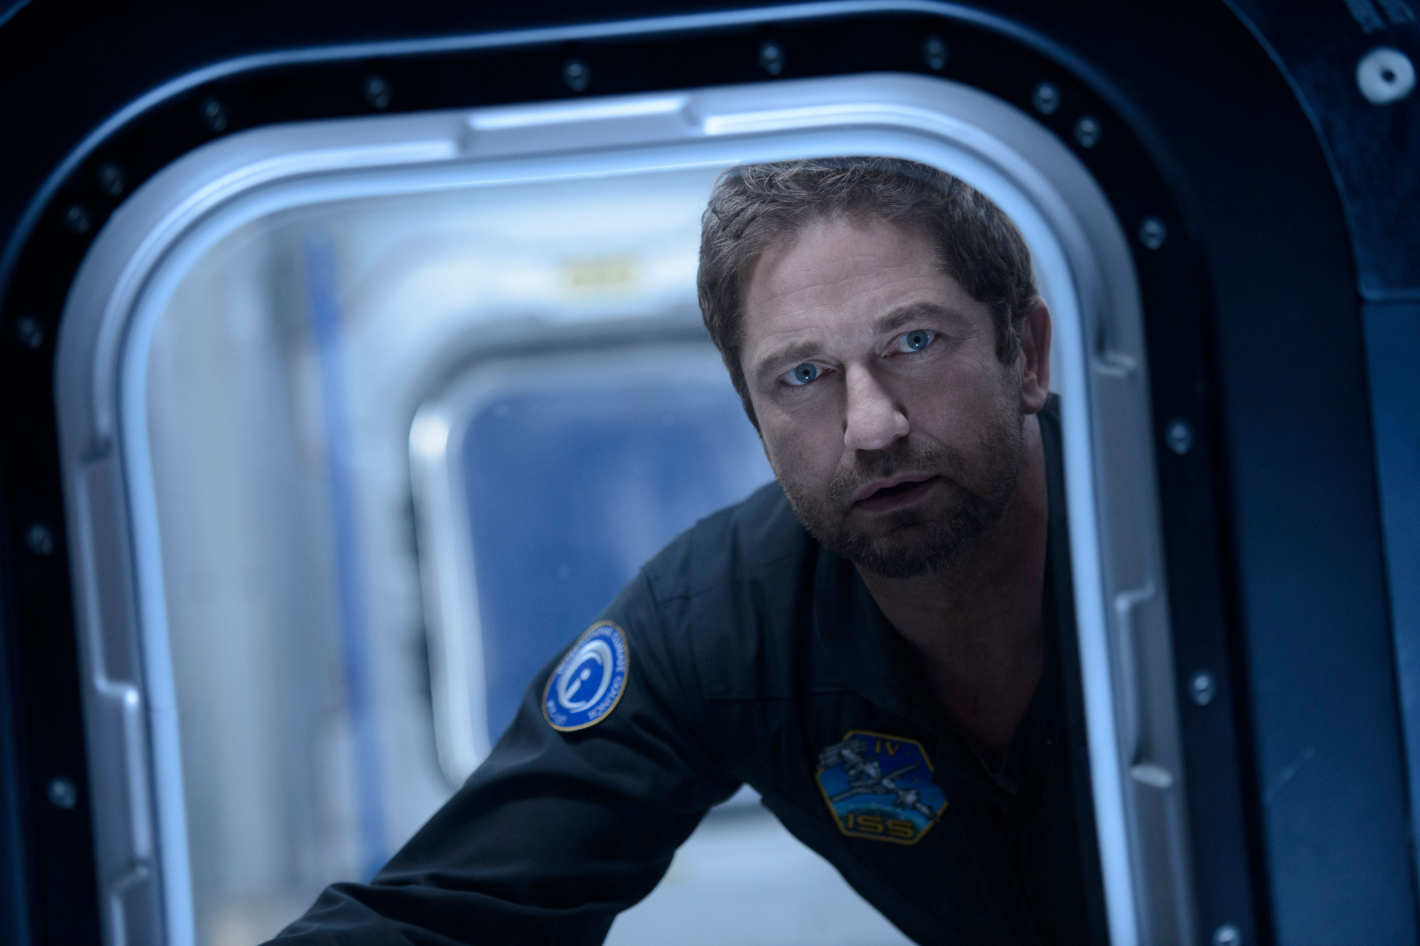 Geostorm images